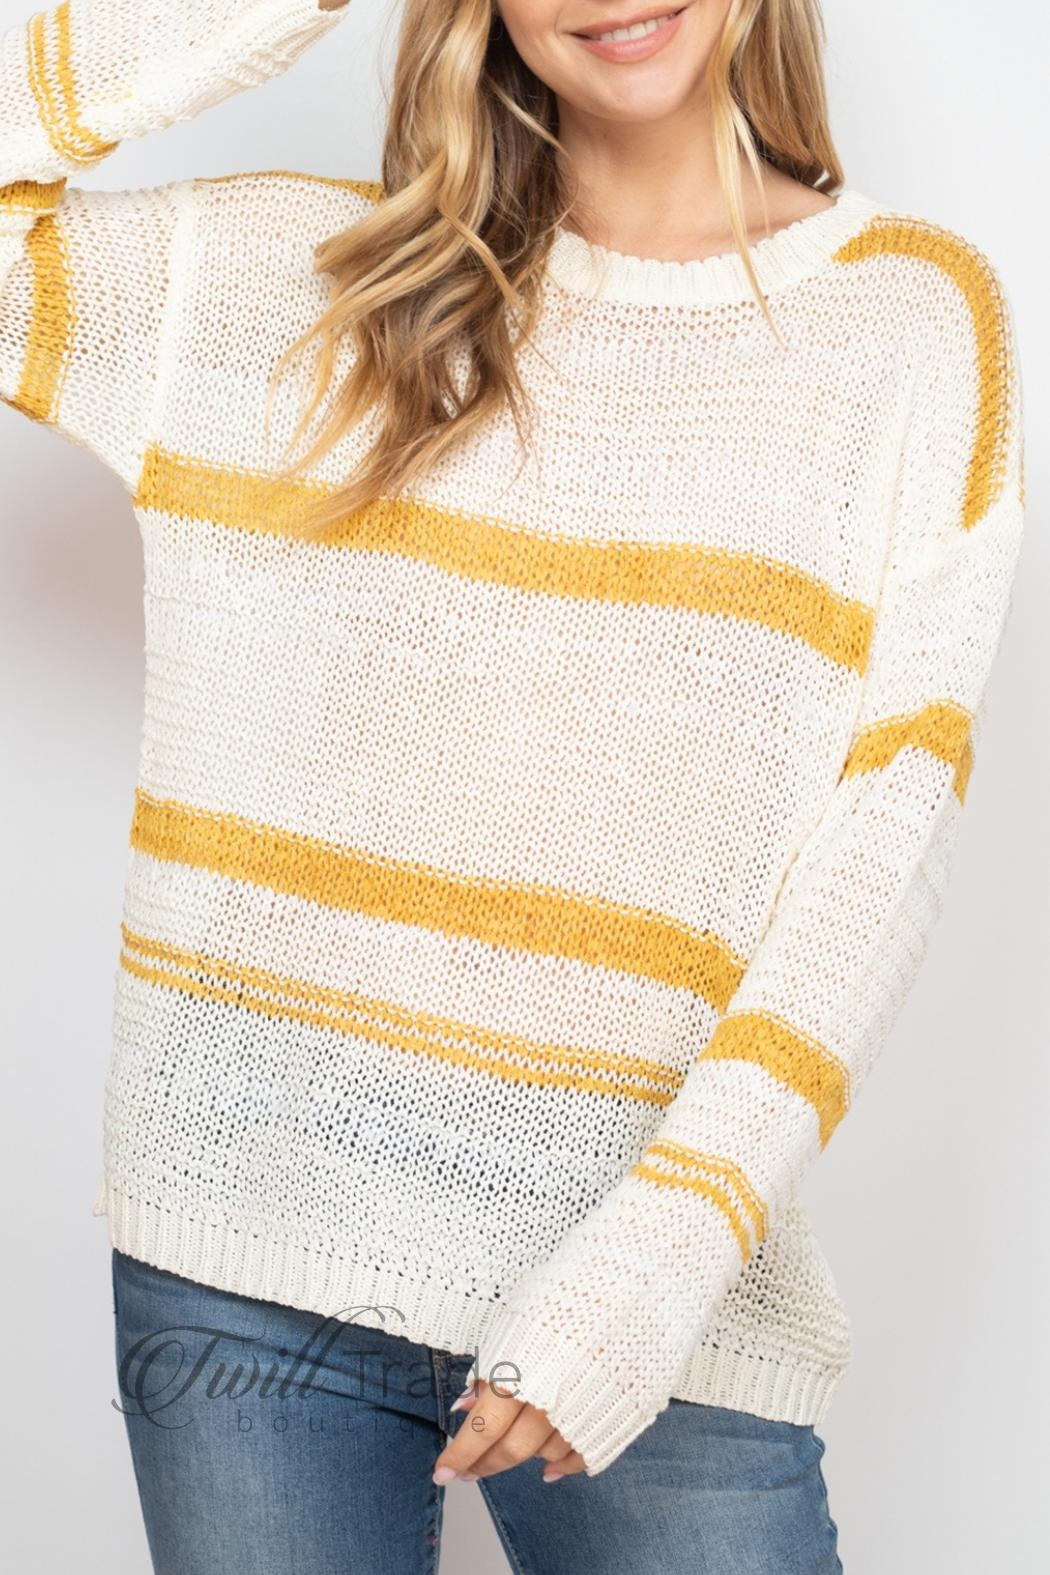 Unbranded Ivory Mustard Sweater - Main Image